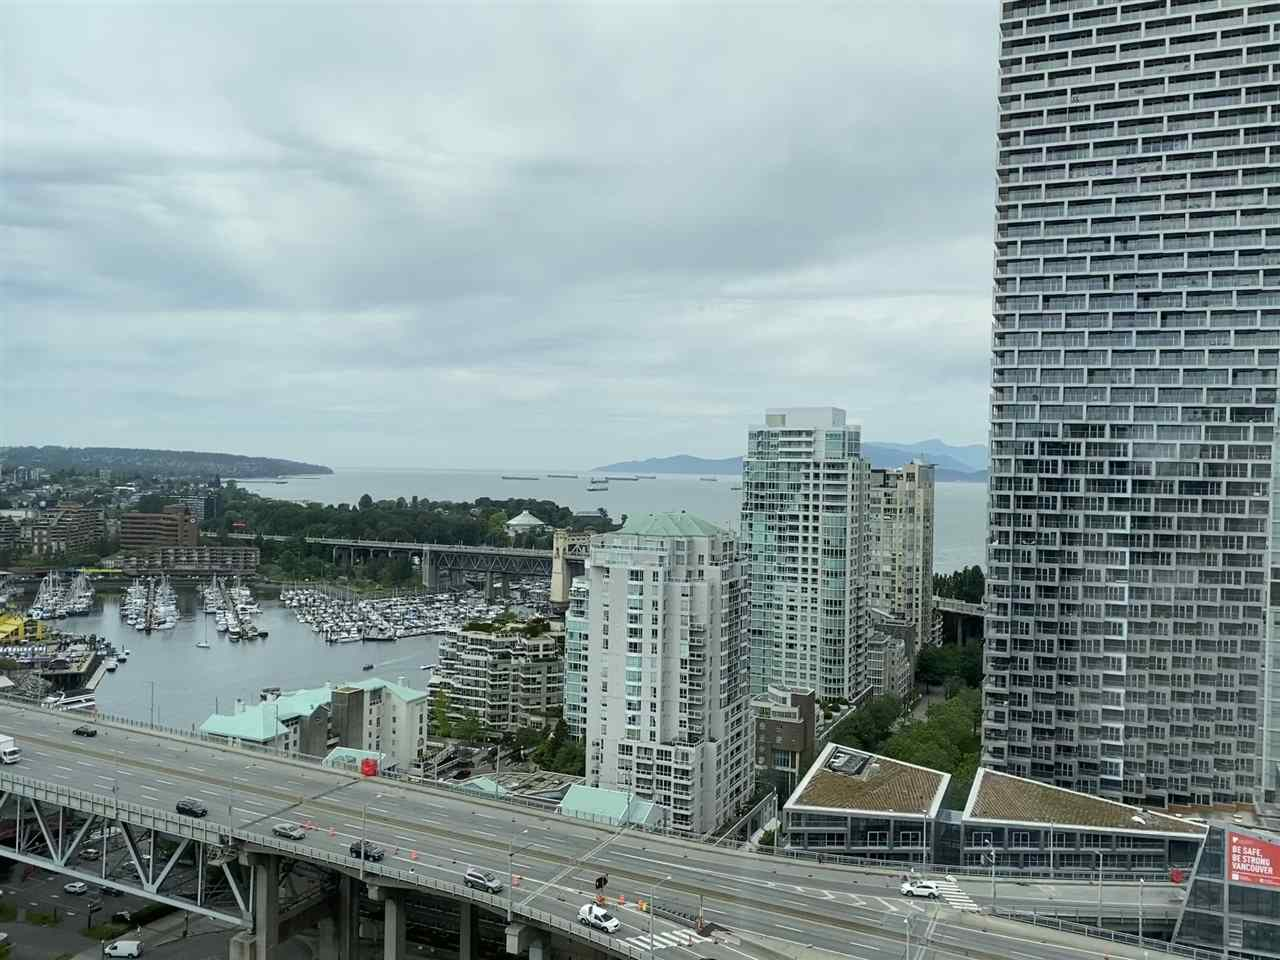 3207 583 BEACH CRESCENT - Yaletown Apartment/Condo for sale, 1 Bedroom (R2459938)